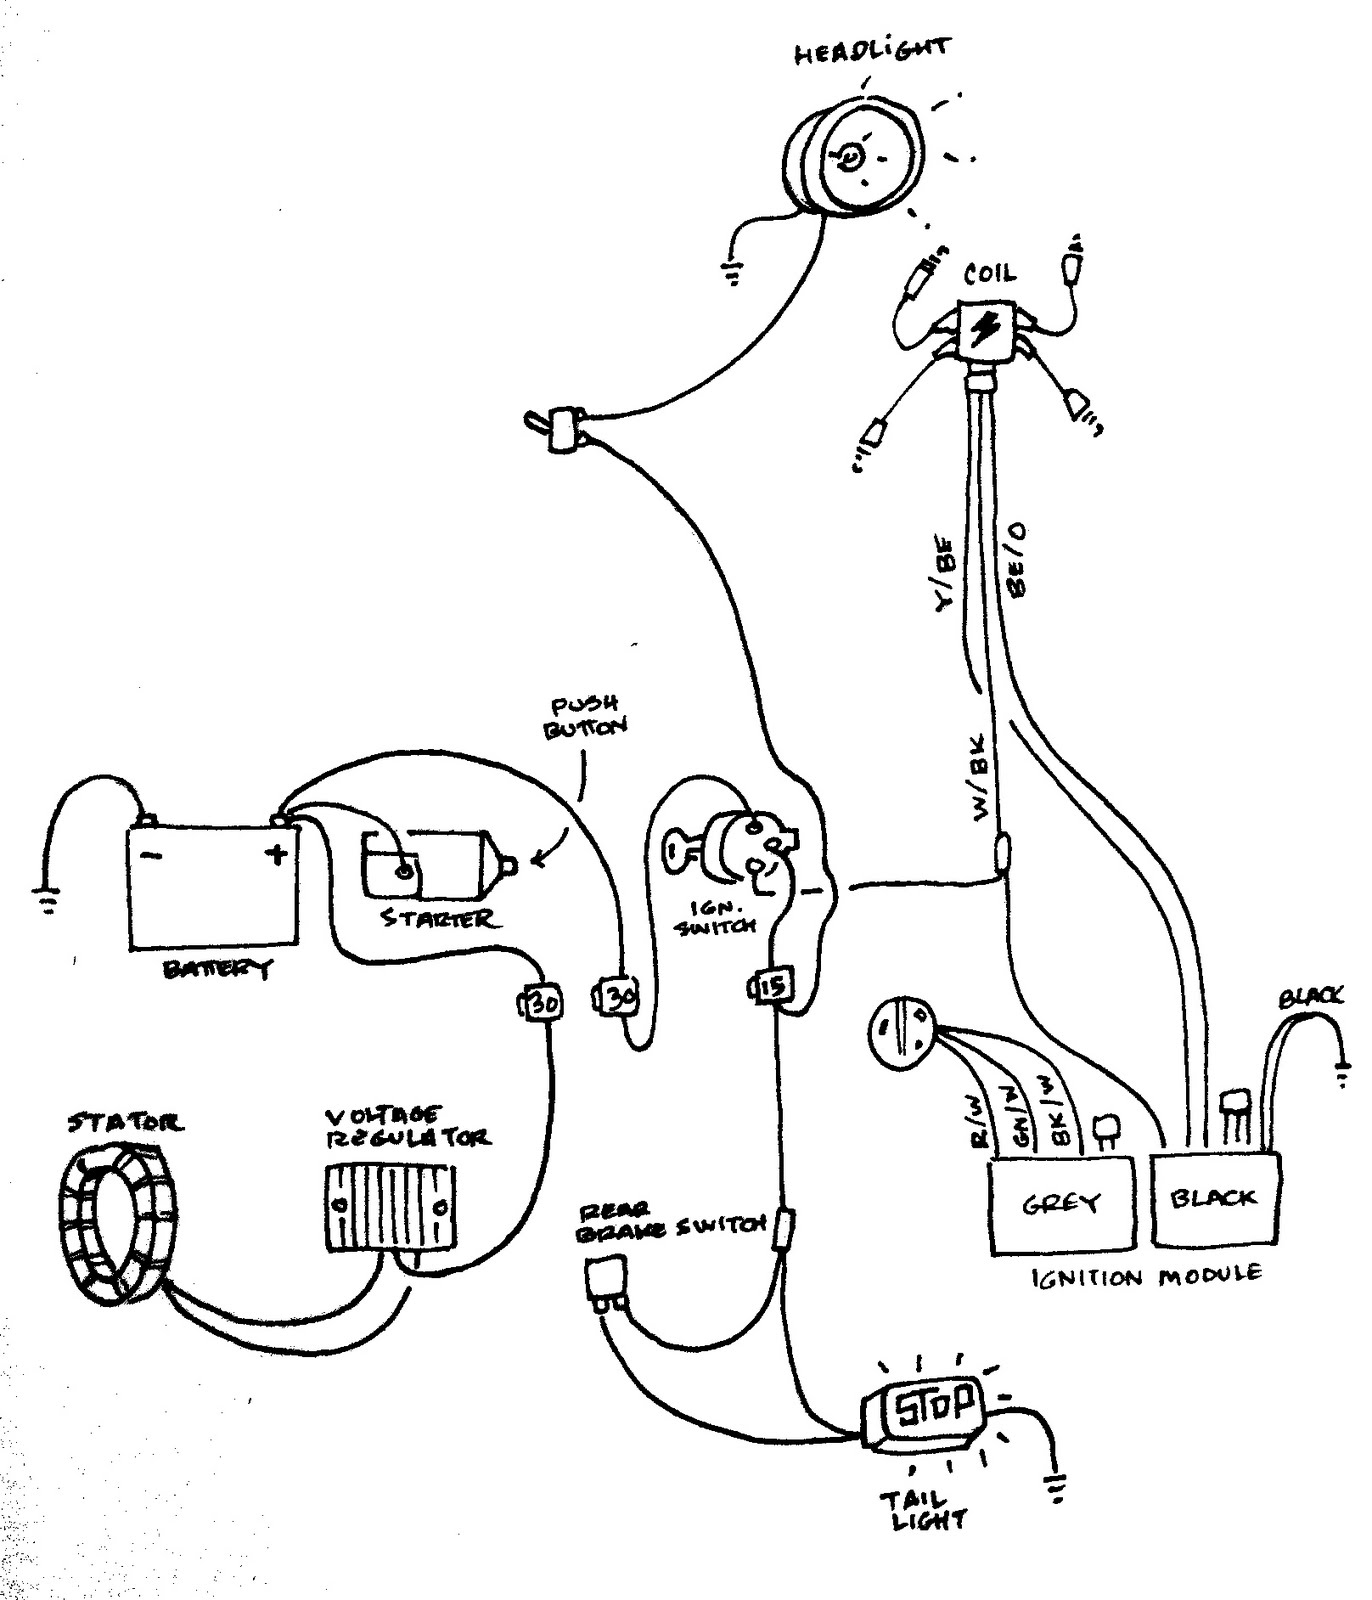 49cc 2 stroke pocket bike wiring diagram 4 wire ignition switch diagram pocket bikerh  [ 1372 x 1600 Pixel ]